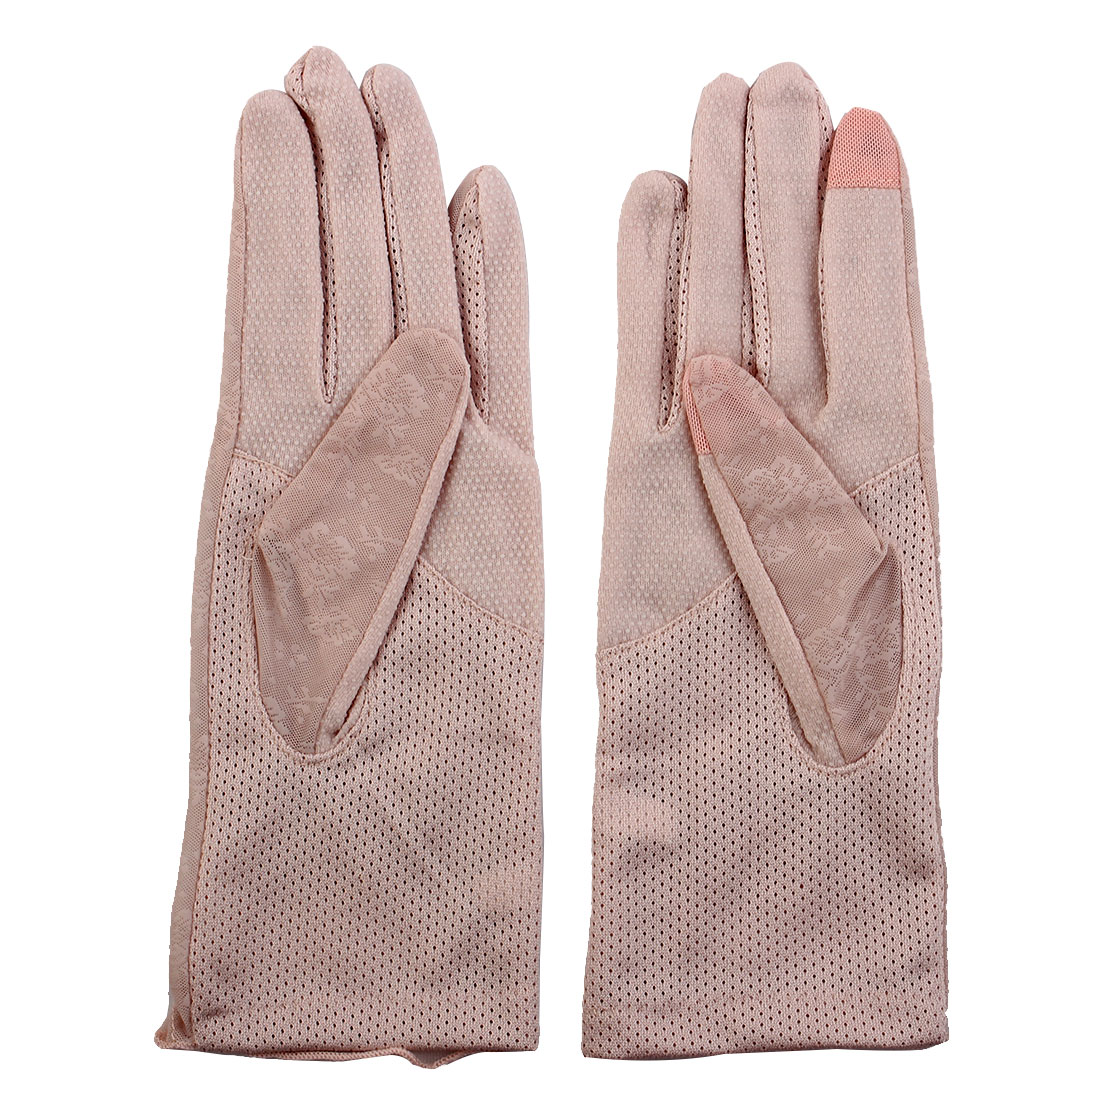 Outdoor Travel Driving Flower Decor Full Finger Non-slip Sun Resistant Gloves Light Pink Pair for Women Ladies